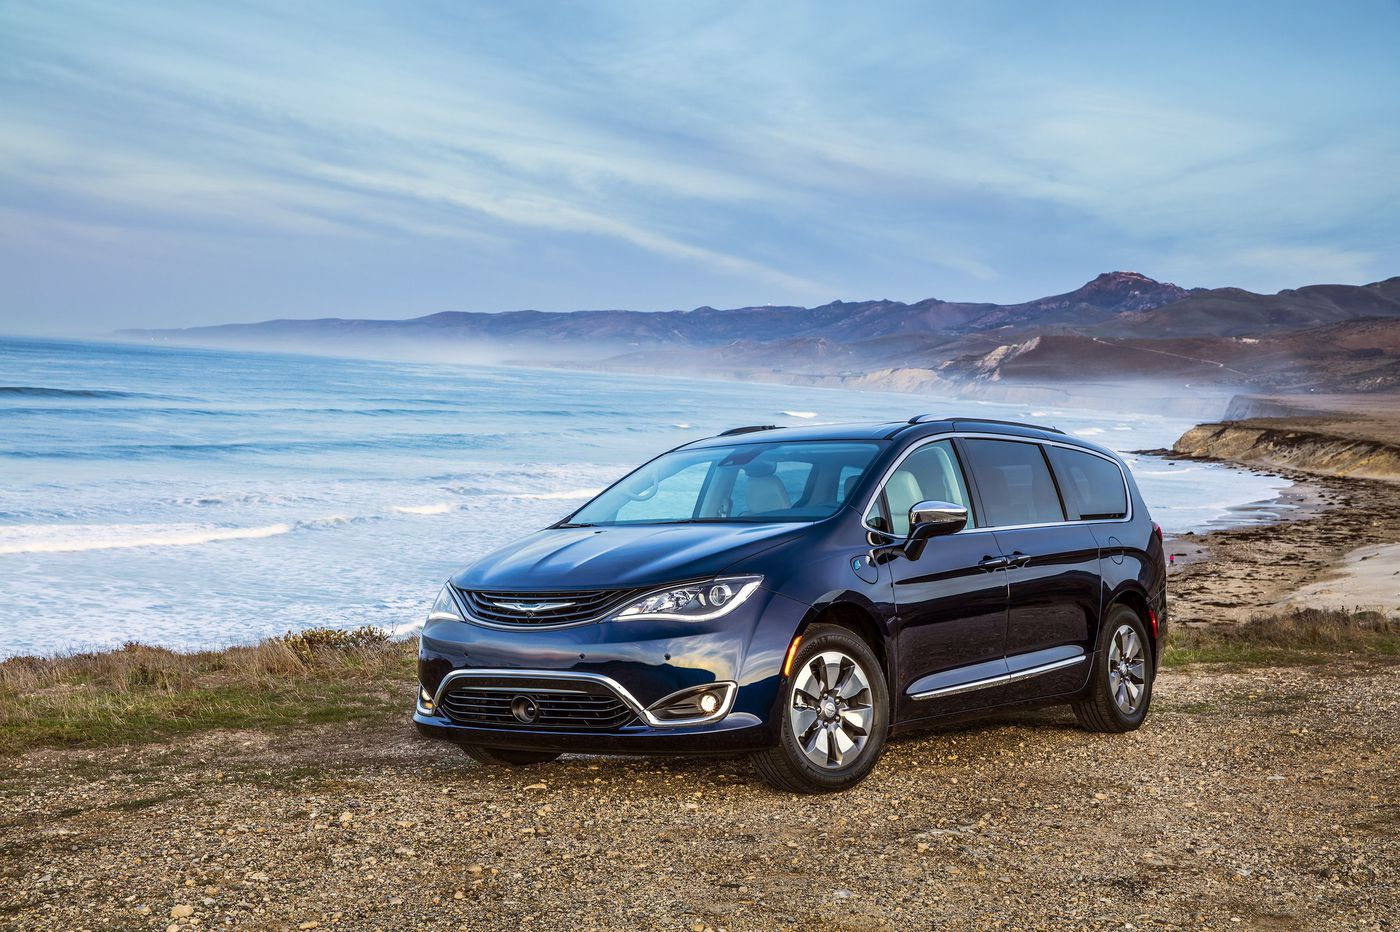 2019 Pacifica Hybrid efficient, roomy, practical — but does it go the distance?